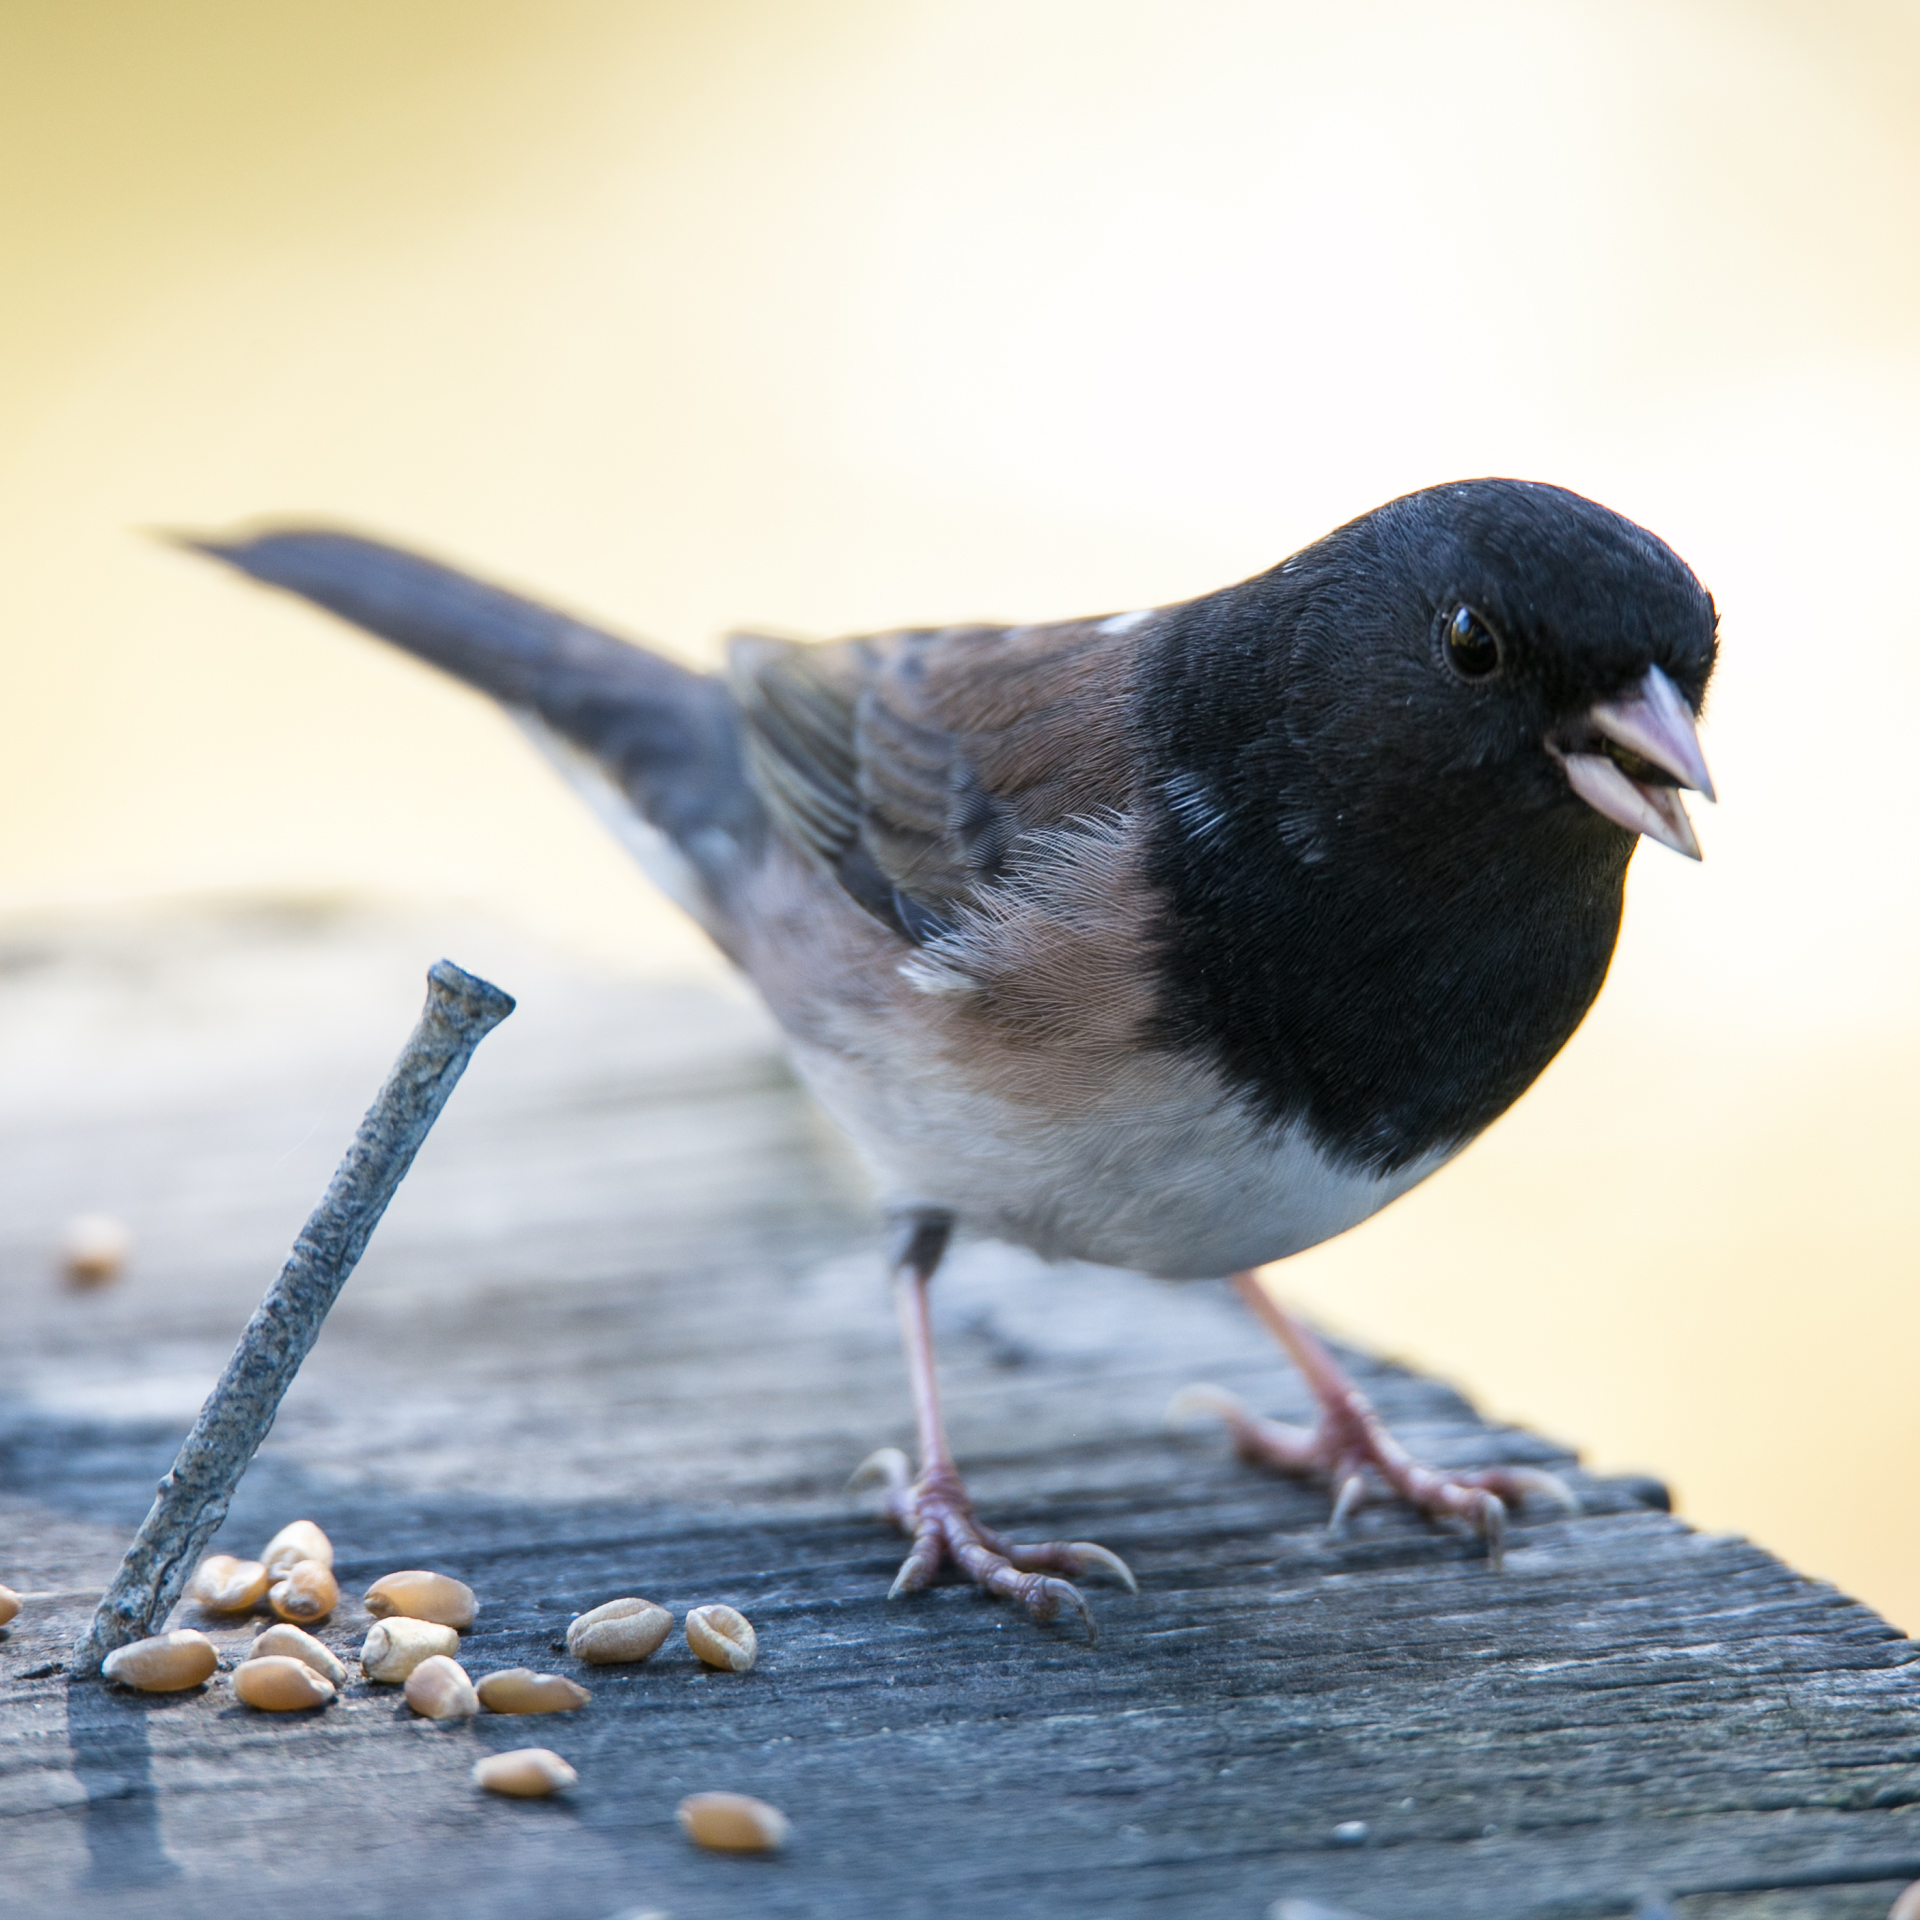 Quite unusually, the junco was sticking around to have his picture taken.